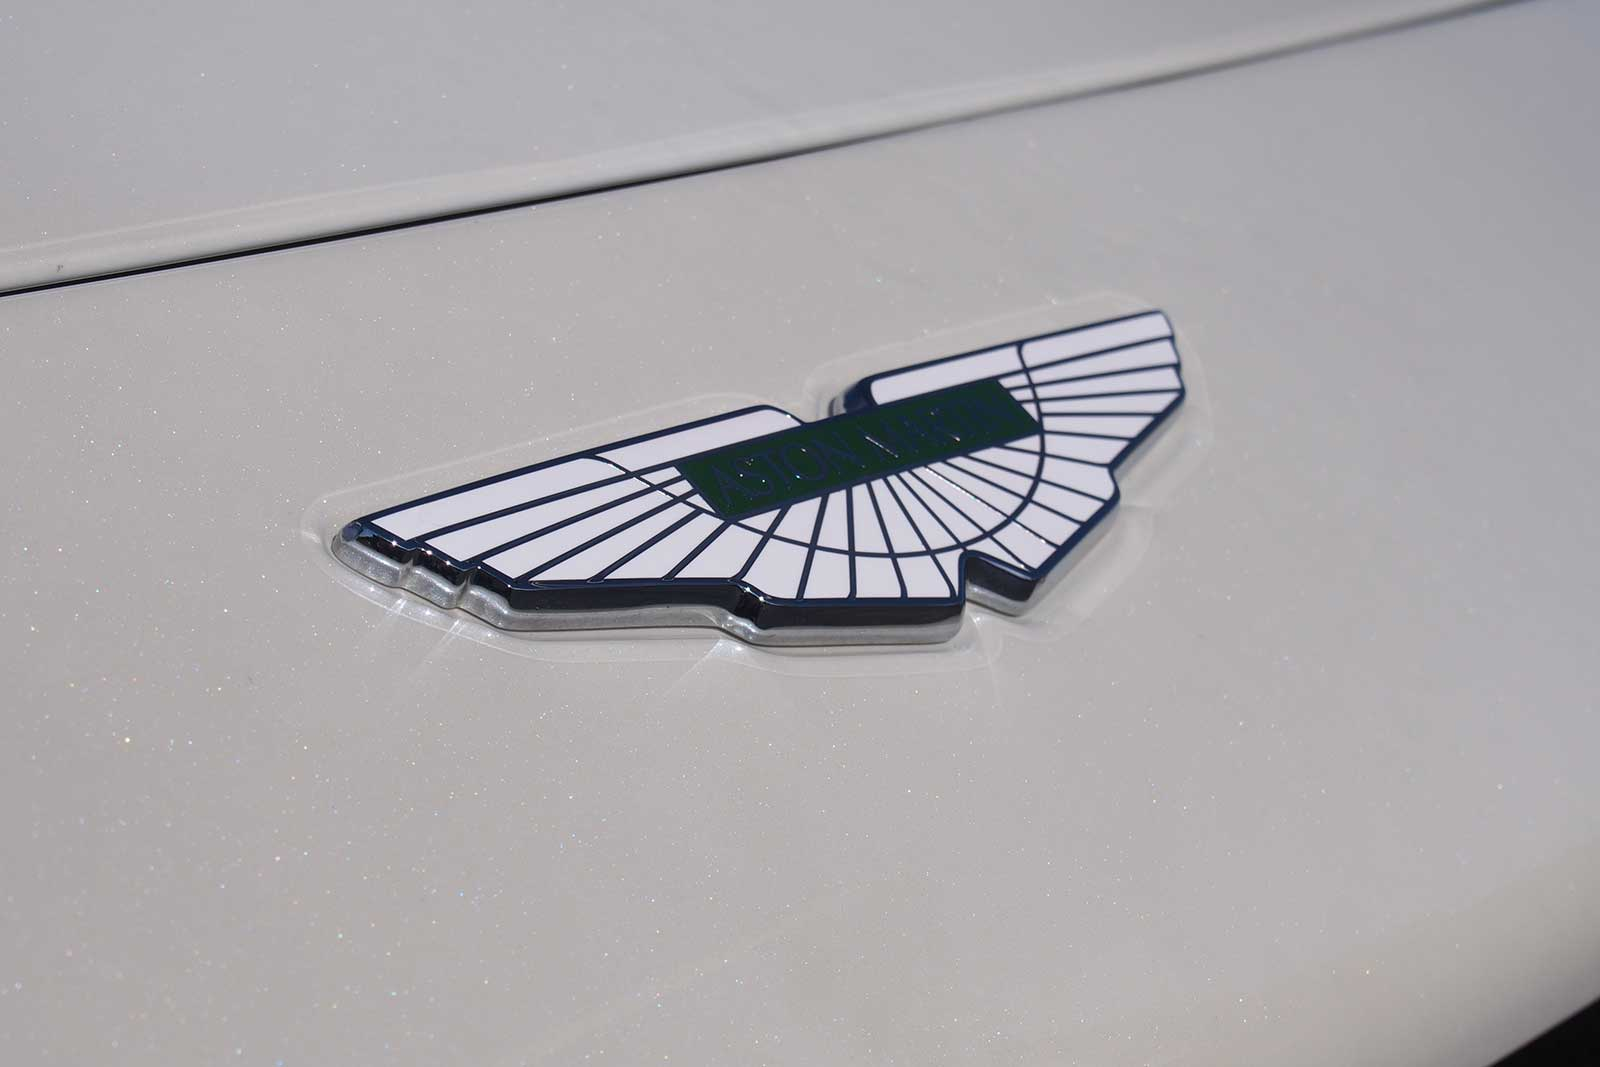 Aston Martin Thinks the Vantage is Better Than the Porsche 911 ... on black aston martin logo, aston martin gucci logo, aston martin car logo, aston martin dbs logo,